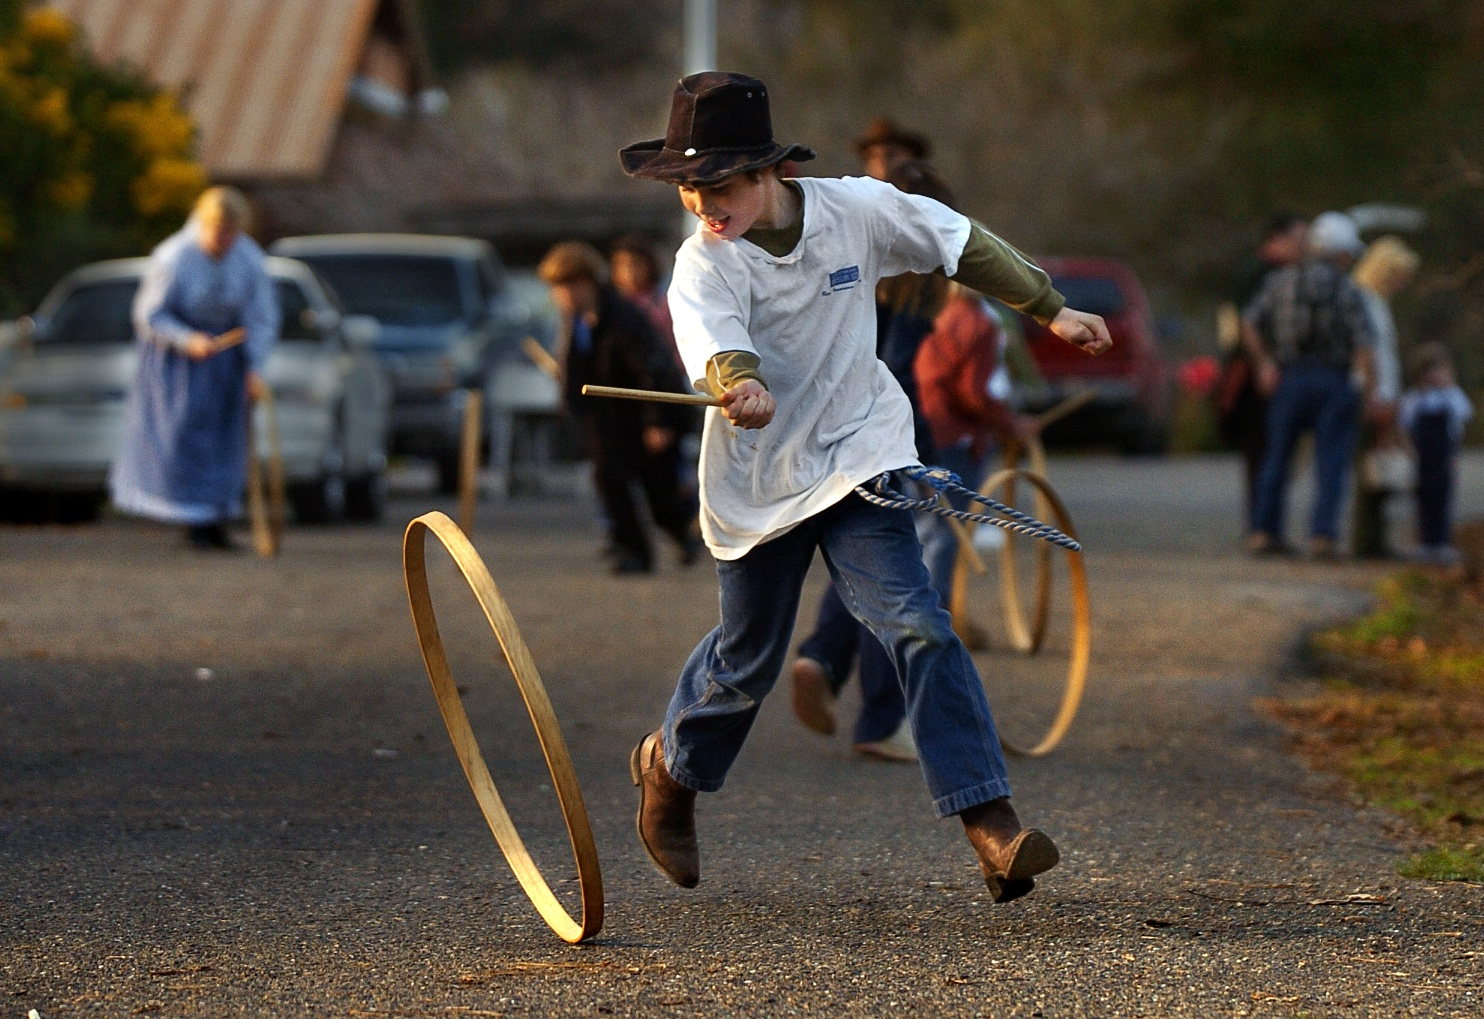 Philip Cowdery 9 rolls a wooden hoop down the road at the 'Christmas In Coloma' festival at the Marshall Gold Discovery State Park in Coloma on Sunday December 12, 2004.